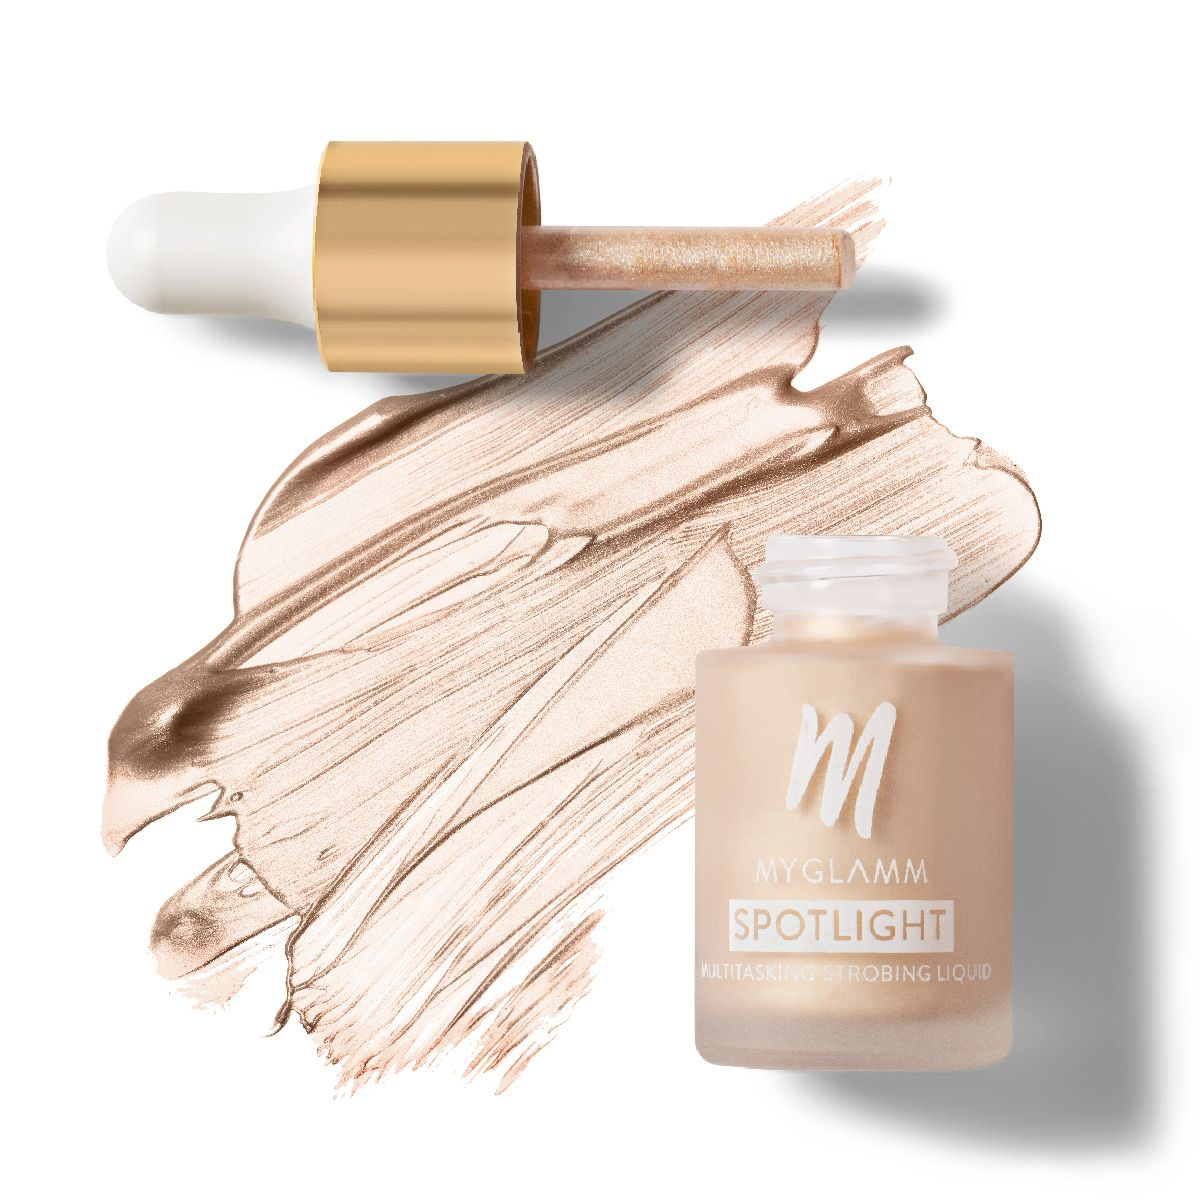 Spotlight Illuminating Liquid Highlighter